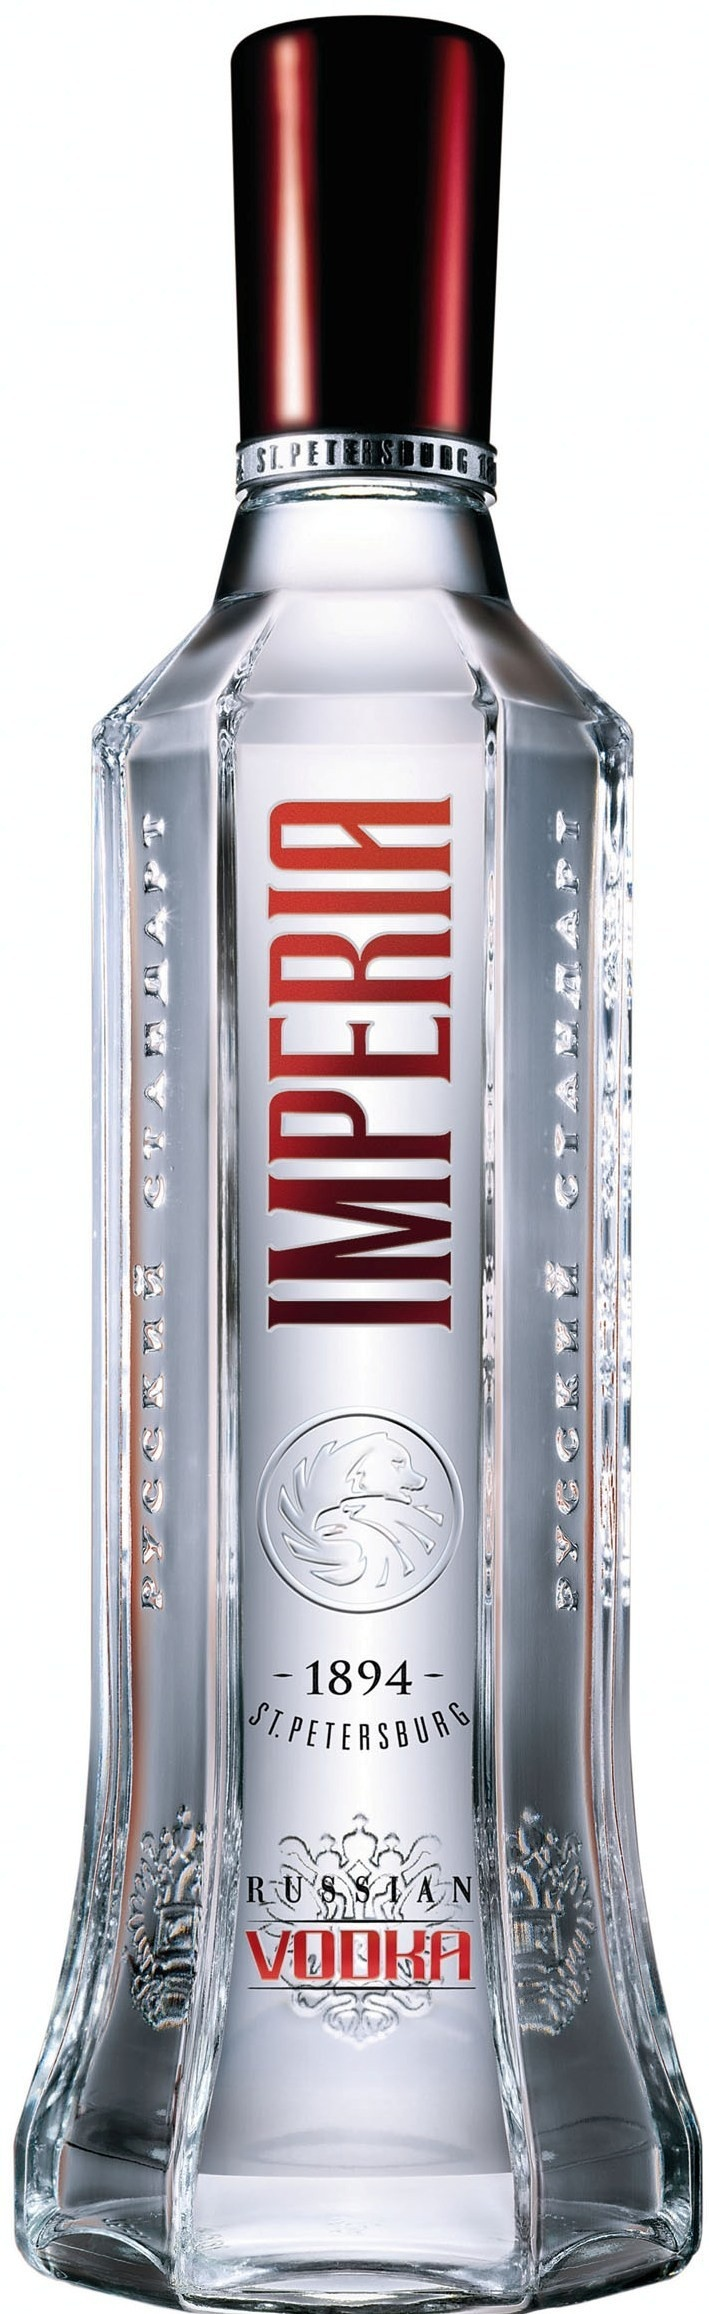 Russian Standard Imperia by Russian Standard Vodka 175 cl - Luxury Drinks Delivery